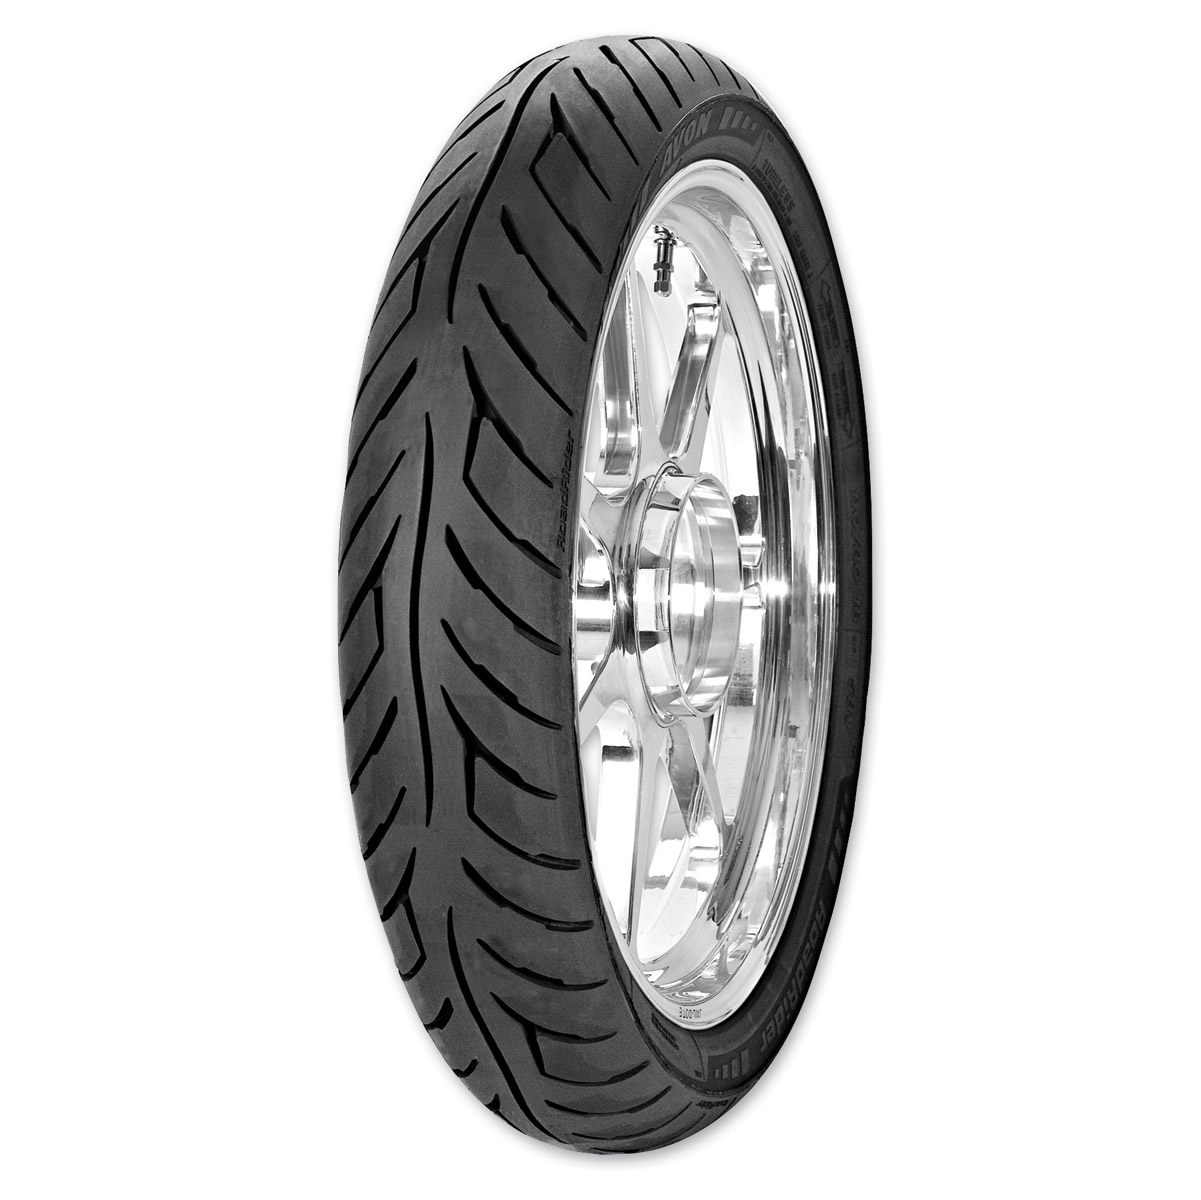 Avon AM26 Roadrider 90/90-19 Front Tire